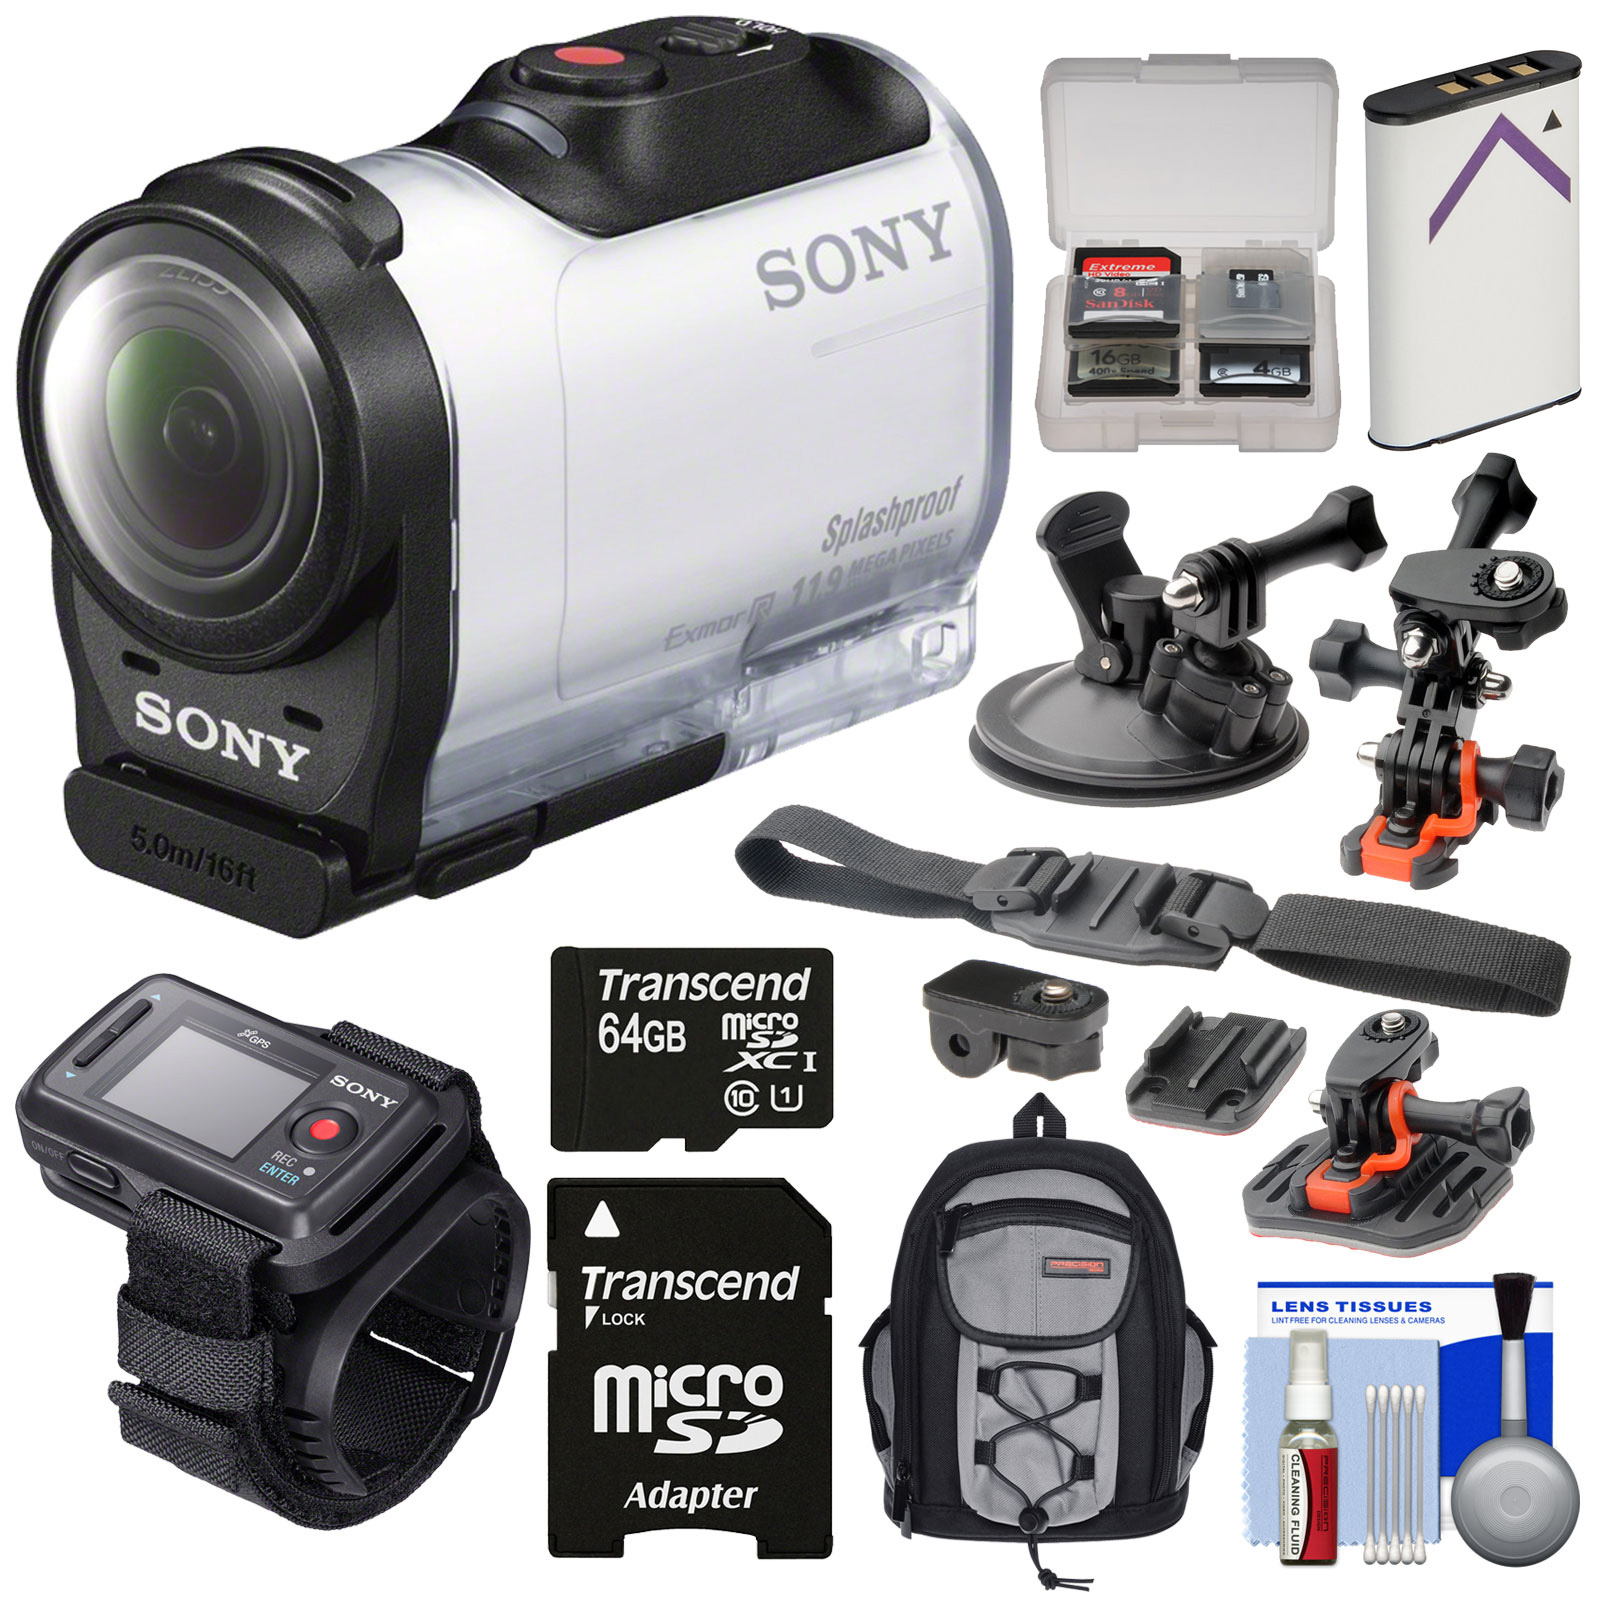 Sony Action Cam HDR-AZ1 Mini HD Video Camera Camcorder & Live View Remote with 64GB Card + Battery + 2 Helmet, Flat Surface & Suction Cup Mounts + Backpack Kit Action Cam